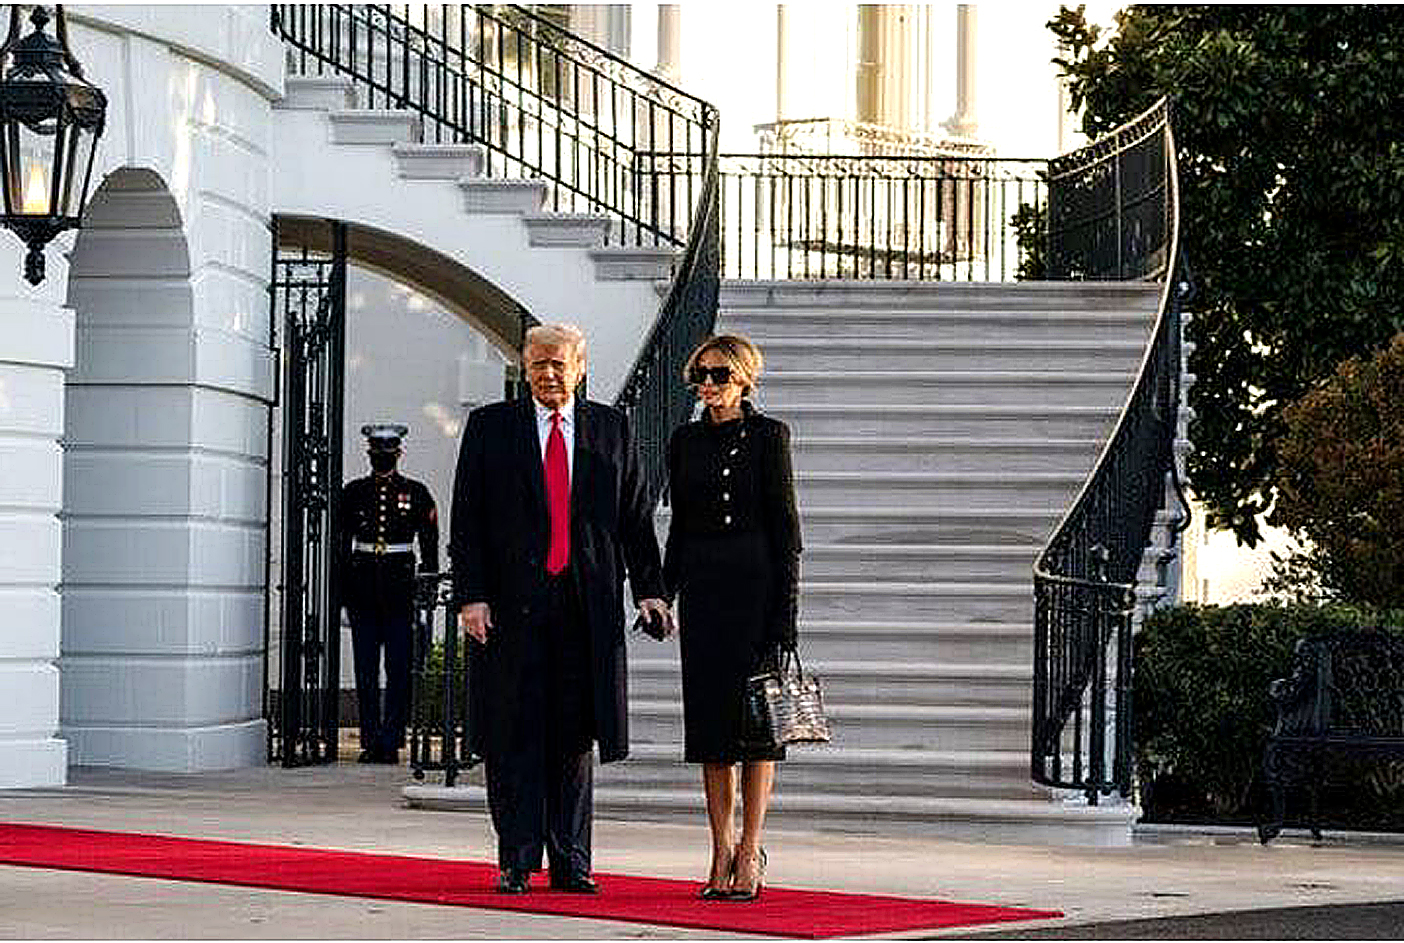 President Donald Trump leaves the White House. President Trump before boarding Marine One with Melania Trump, the first lady, on his last day as president. Image Credit: Anna Moneymaker, 2021.